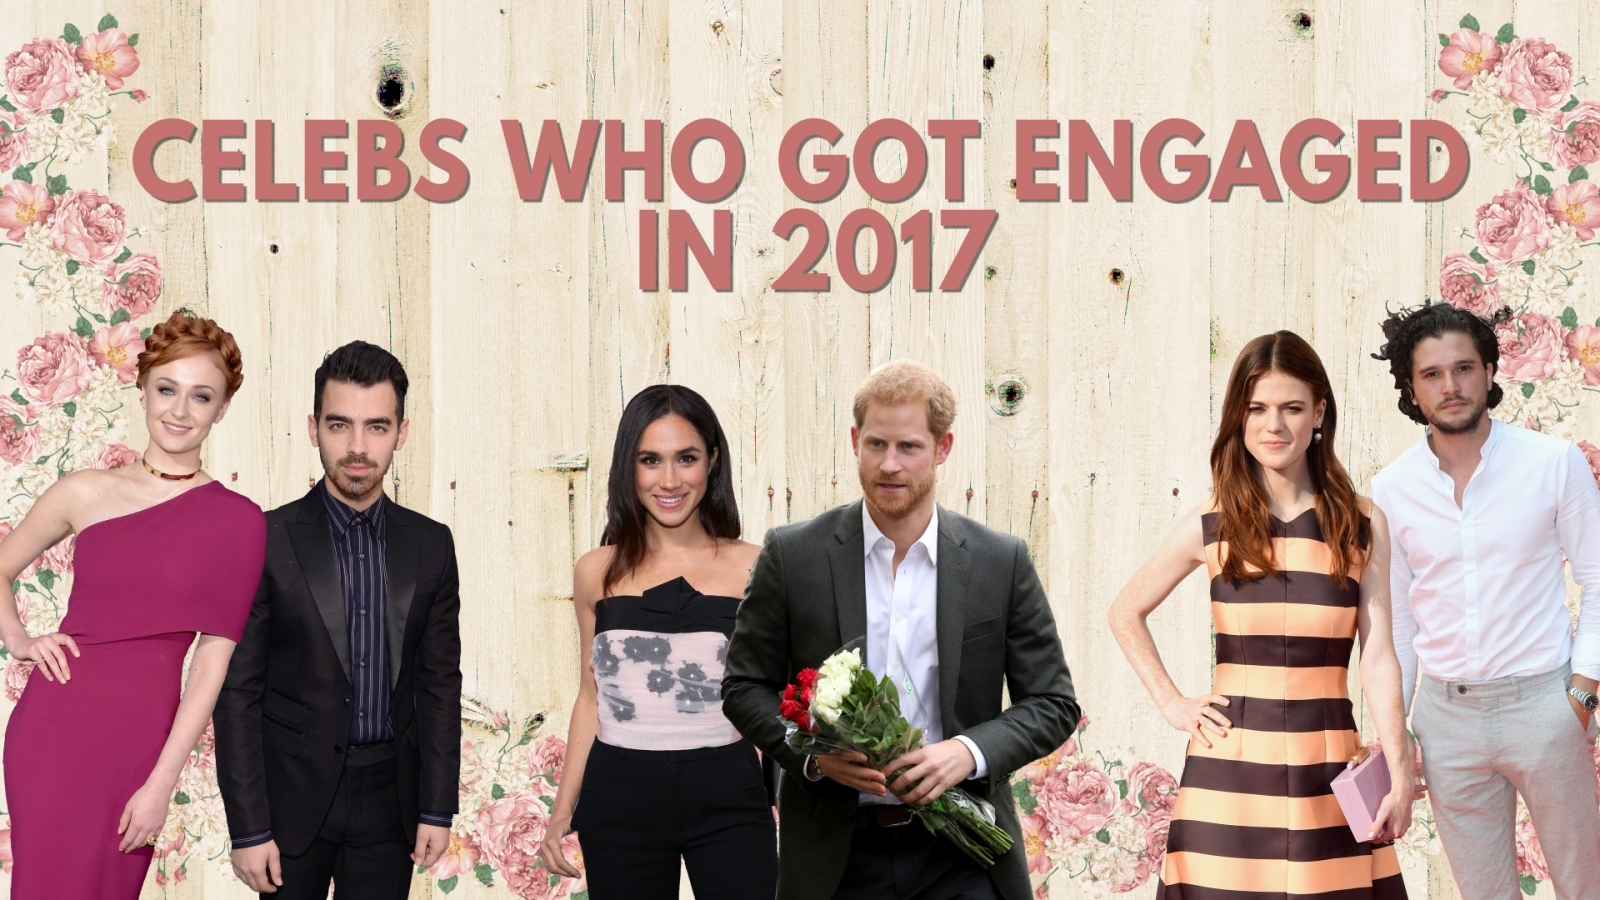 celebrities-who-got-engaged-in-2017-prince-harry-and-meghan-markle-to-rose-leslie-and-kit-harington